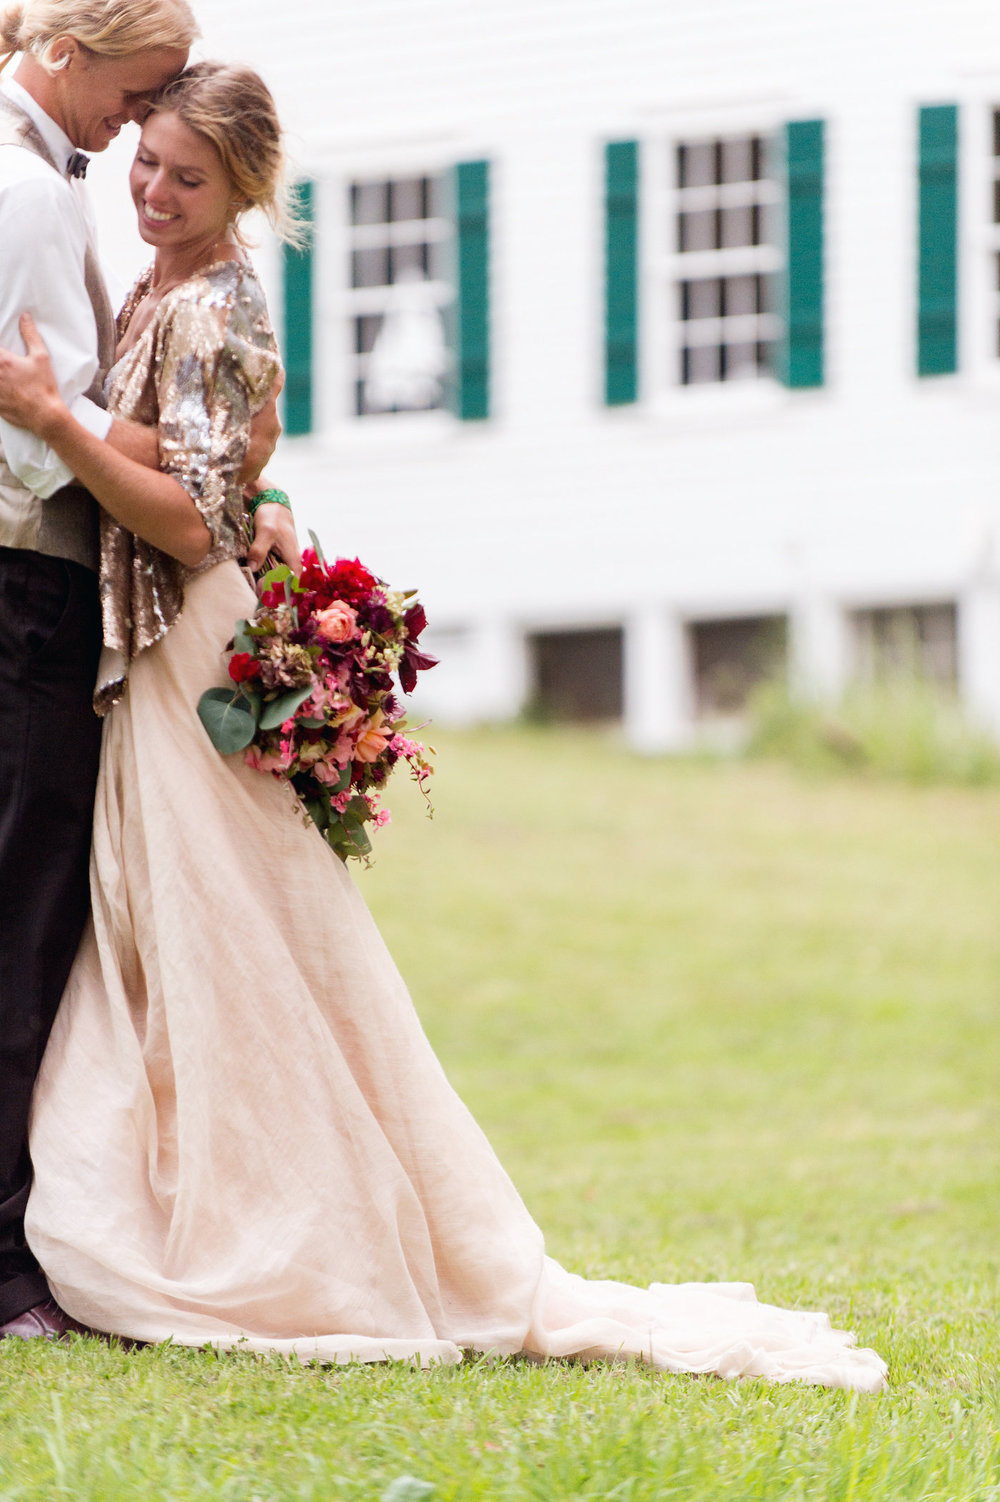 Carol Hannah Bridal Tritea, Kensington, Sequin Smoking Jacket Silver Linings Veil1013.jpg